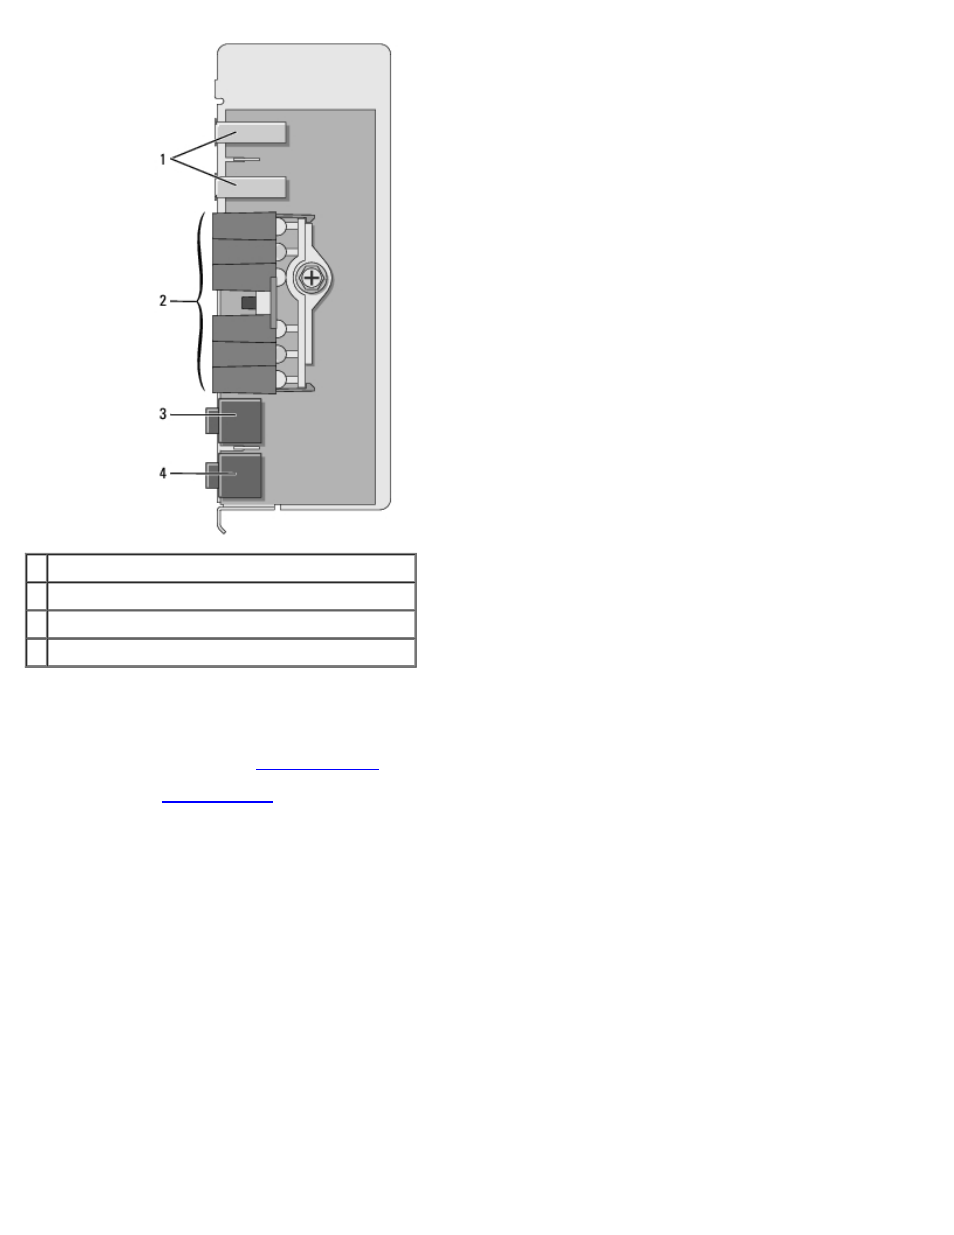 ... Array - dell xps 400 manual various owner manual guide u2022 rh justk co